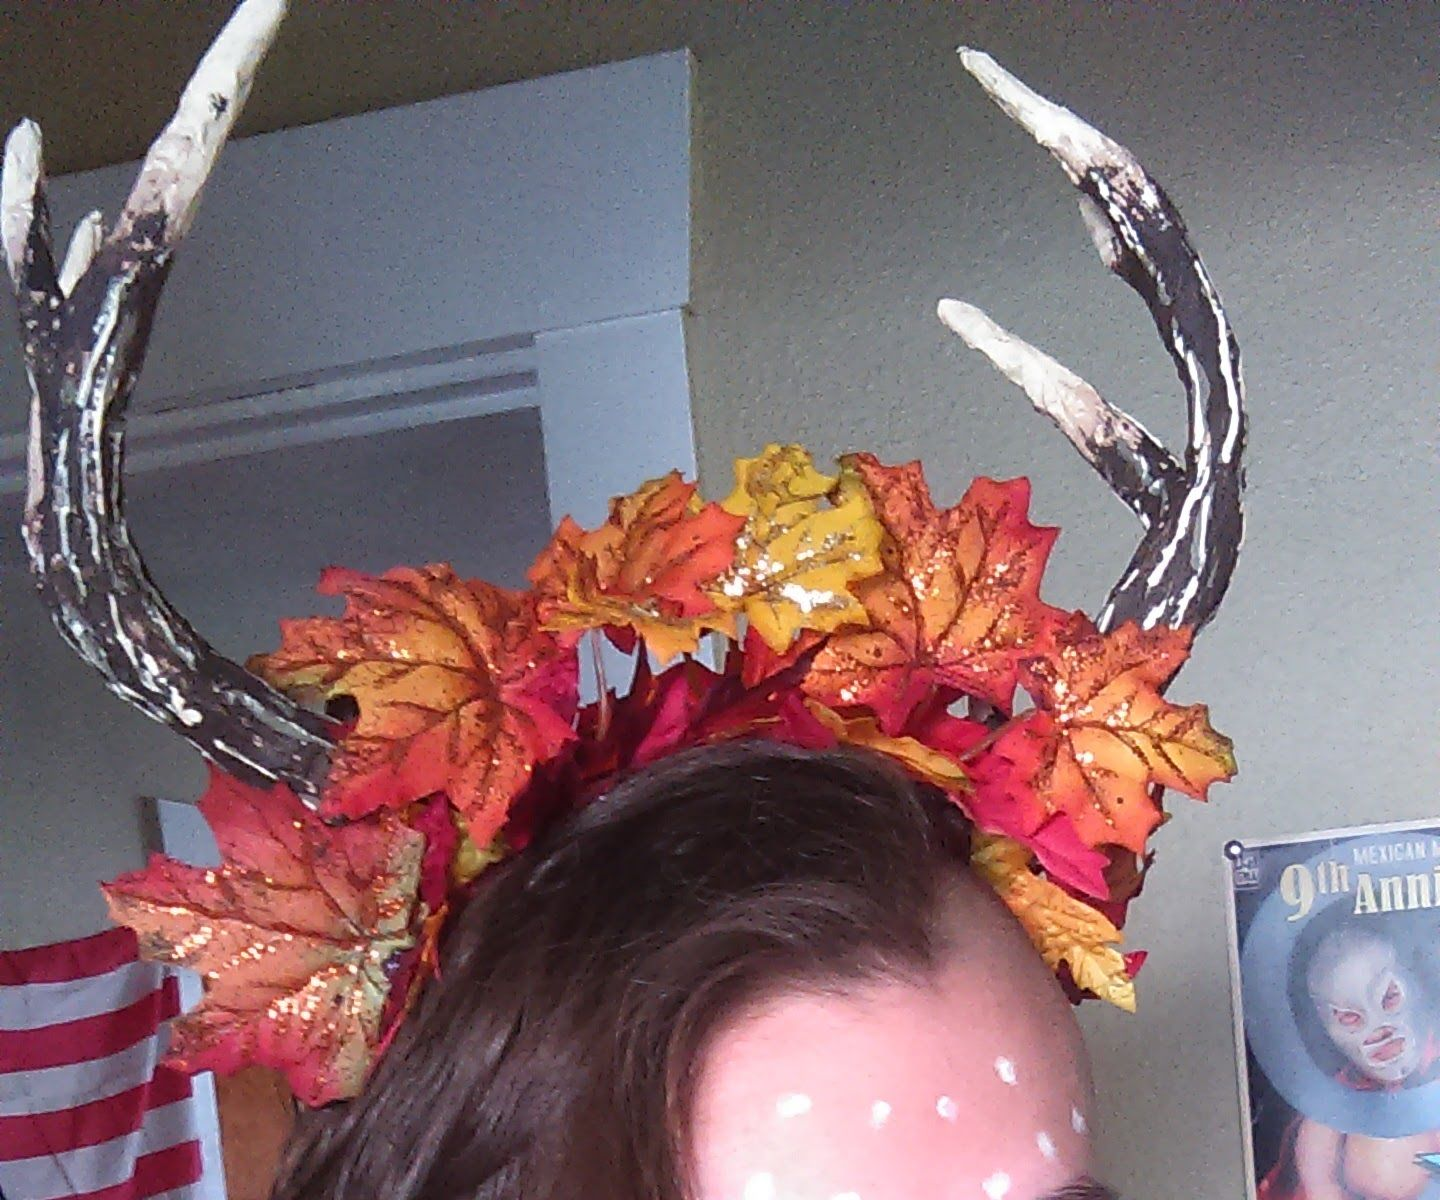 Easy, Lightweight Antlers or Horns